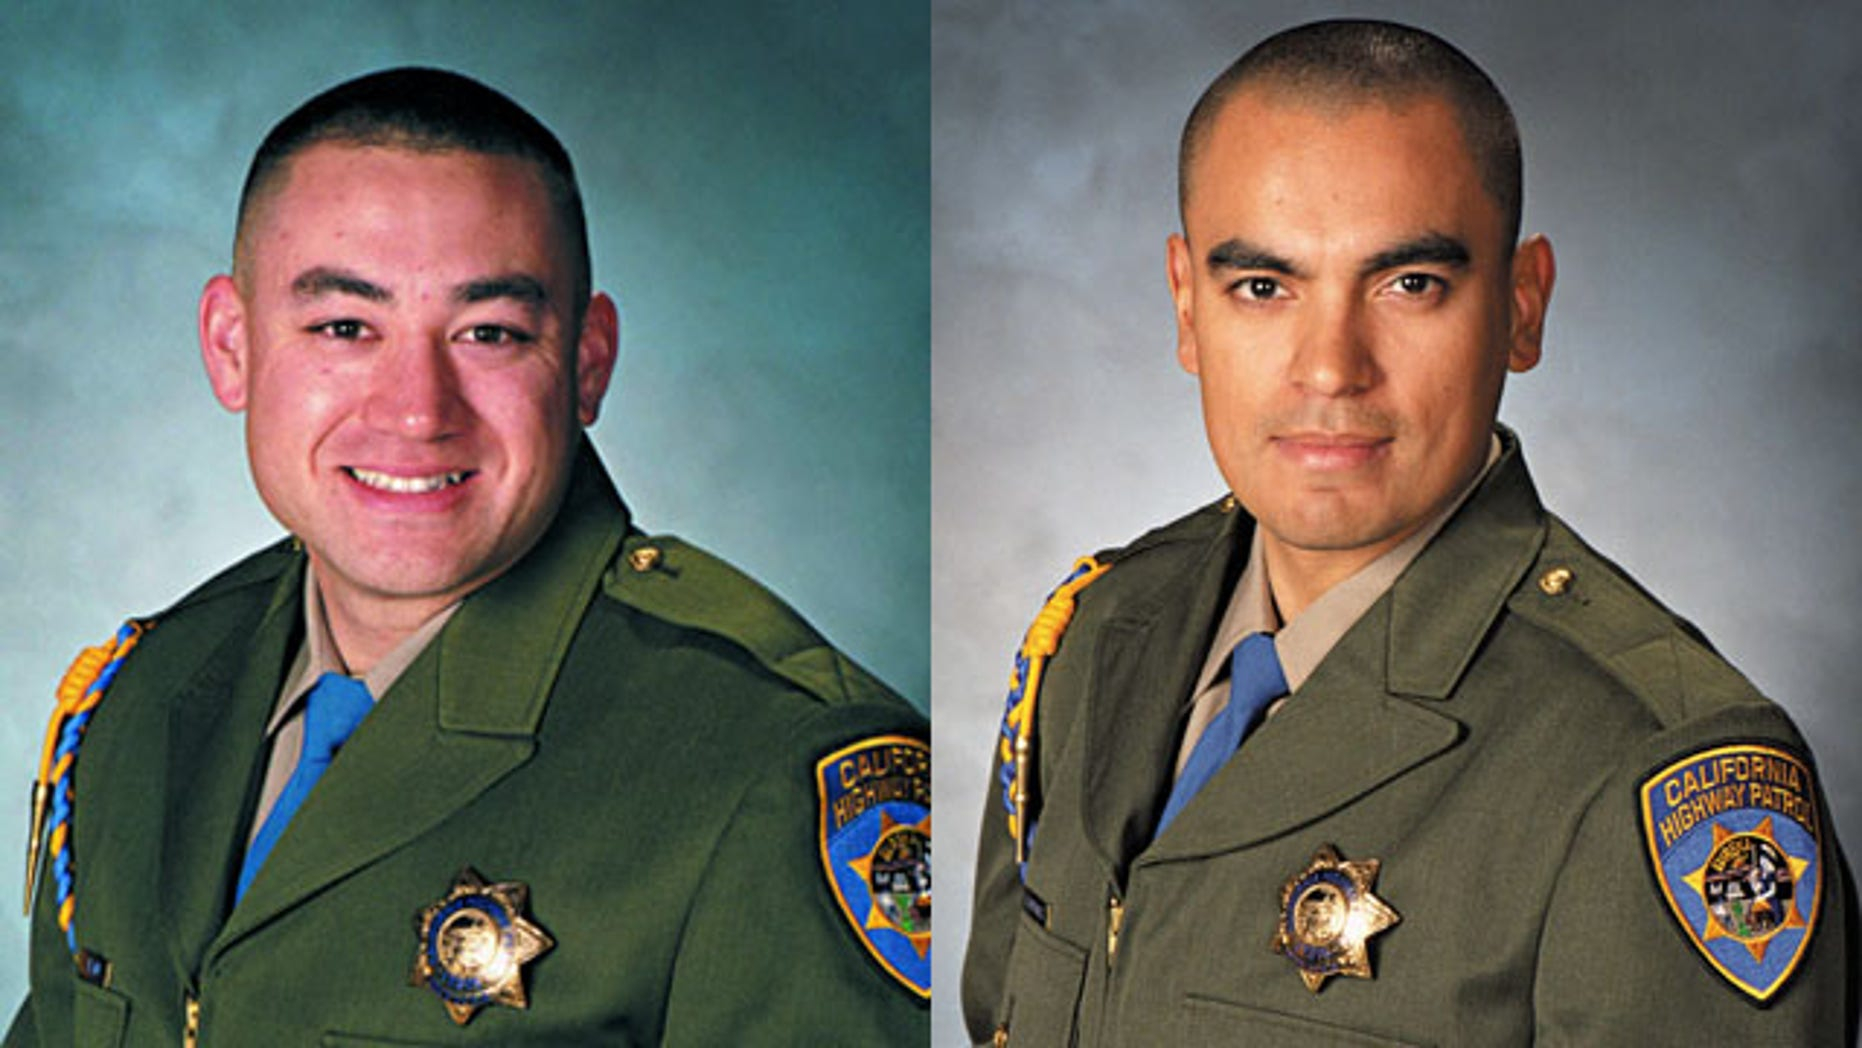 February 17, 2014: These photos show California Highway Patrol Officers Brian Law and Juan Gonzalez. The CHP was mourning the loss of the two officers after their squad car flipped over while responding to a multi-vehicle crash. (AP Photo/California Highway Patrol)